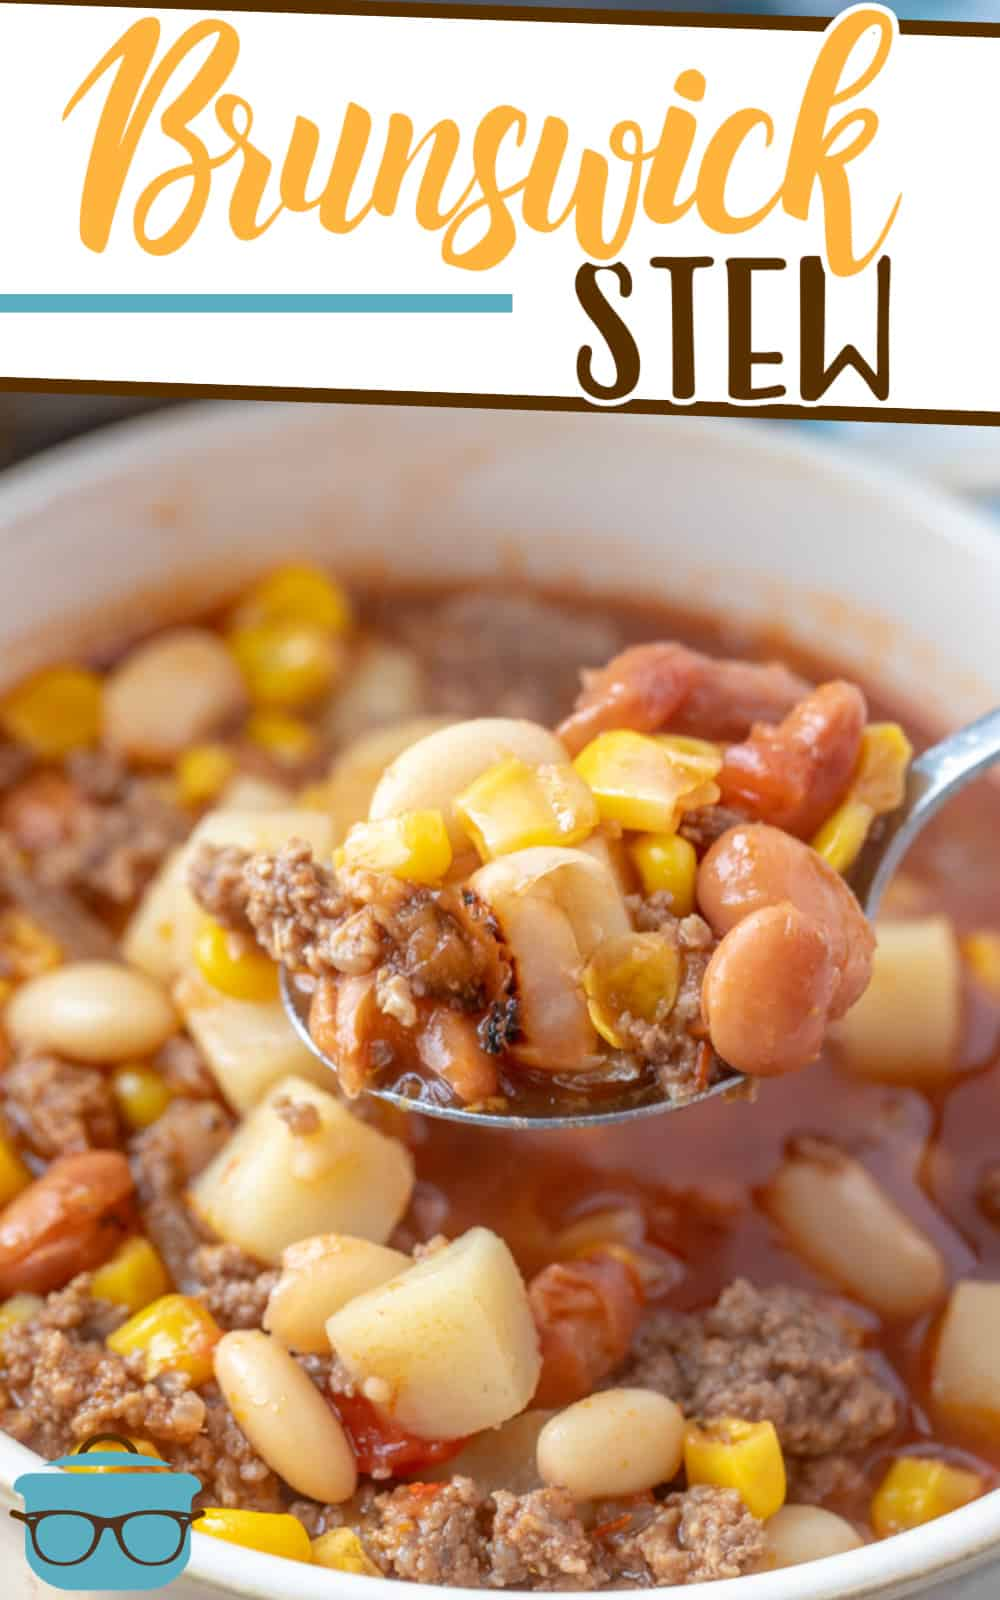 The Best Brunswick Stew recipe is a thick barbecue-flavored stew made with ground beef, potatoes, corn, beans and tomatoes.